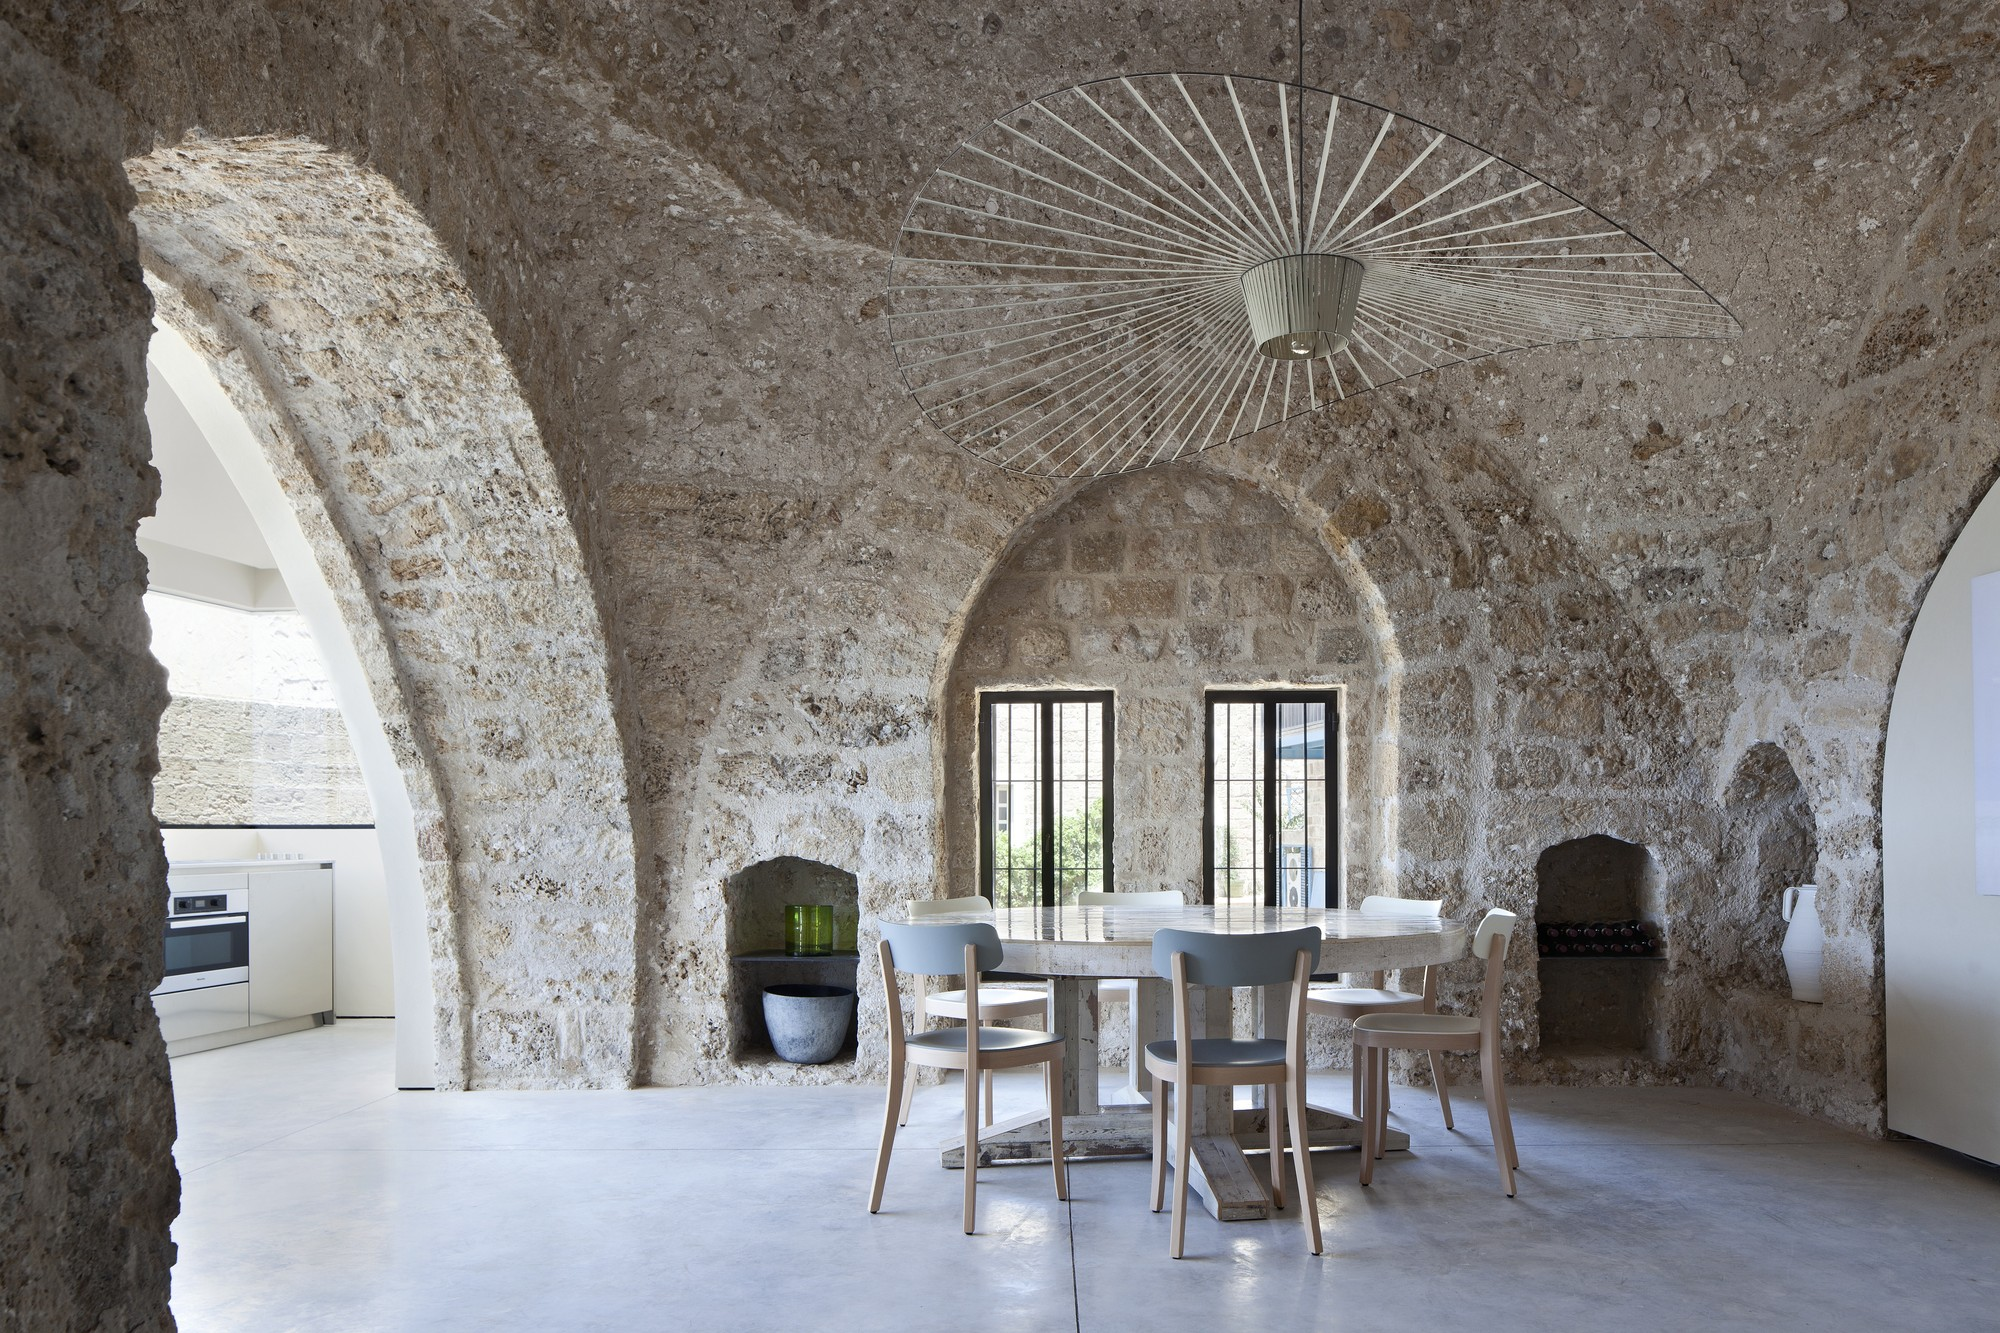 Factory Jaffa House / Pitsou Kedem Architects, © Amit Geron